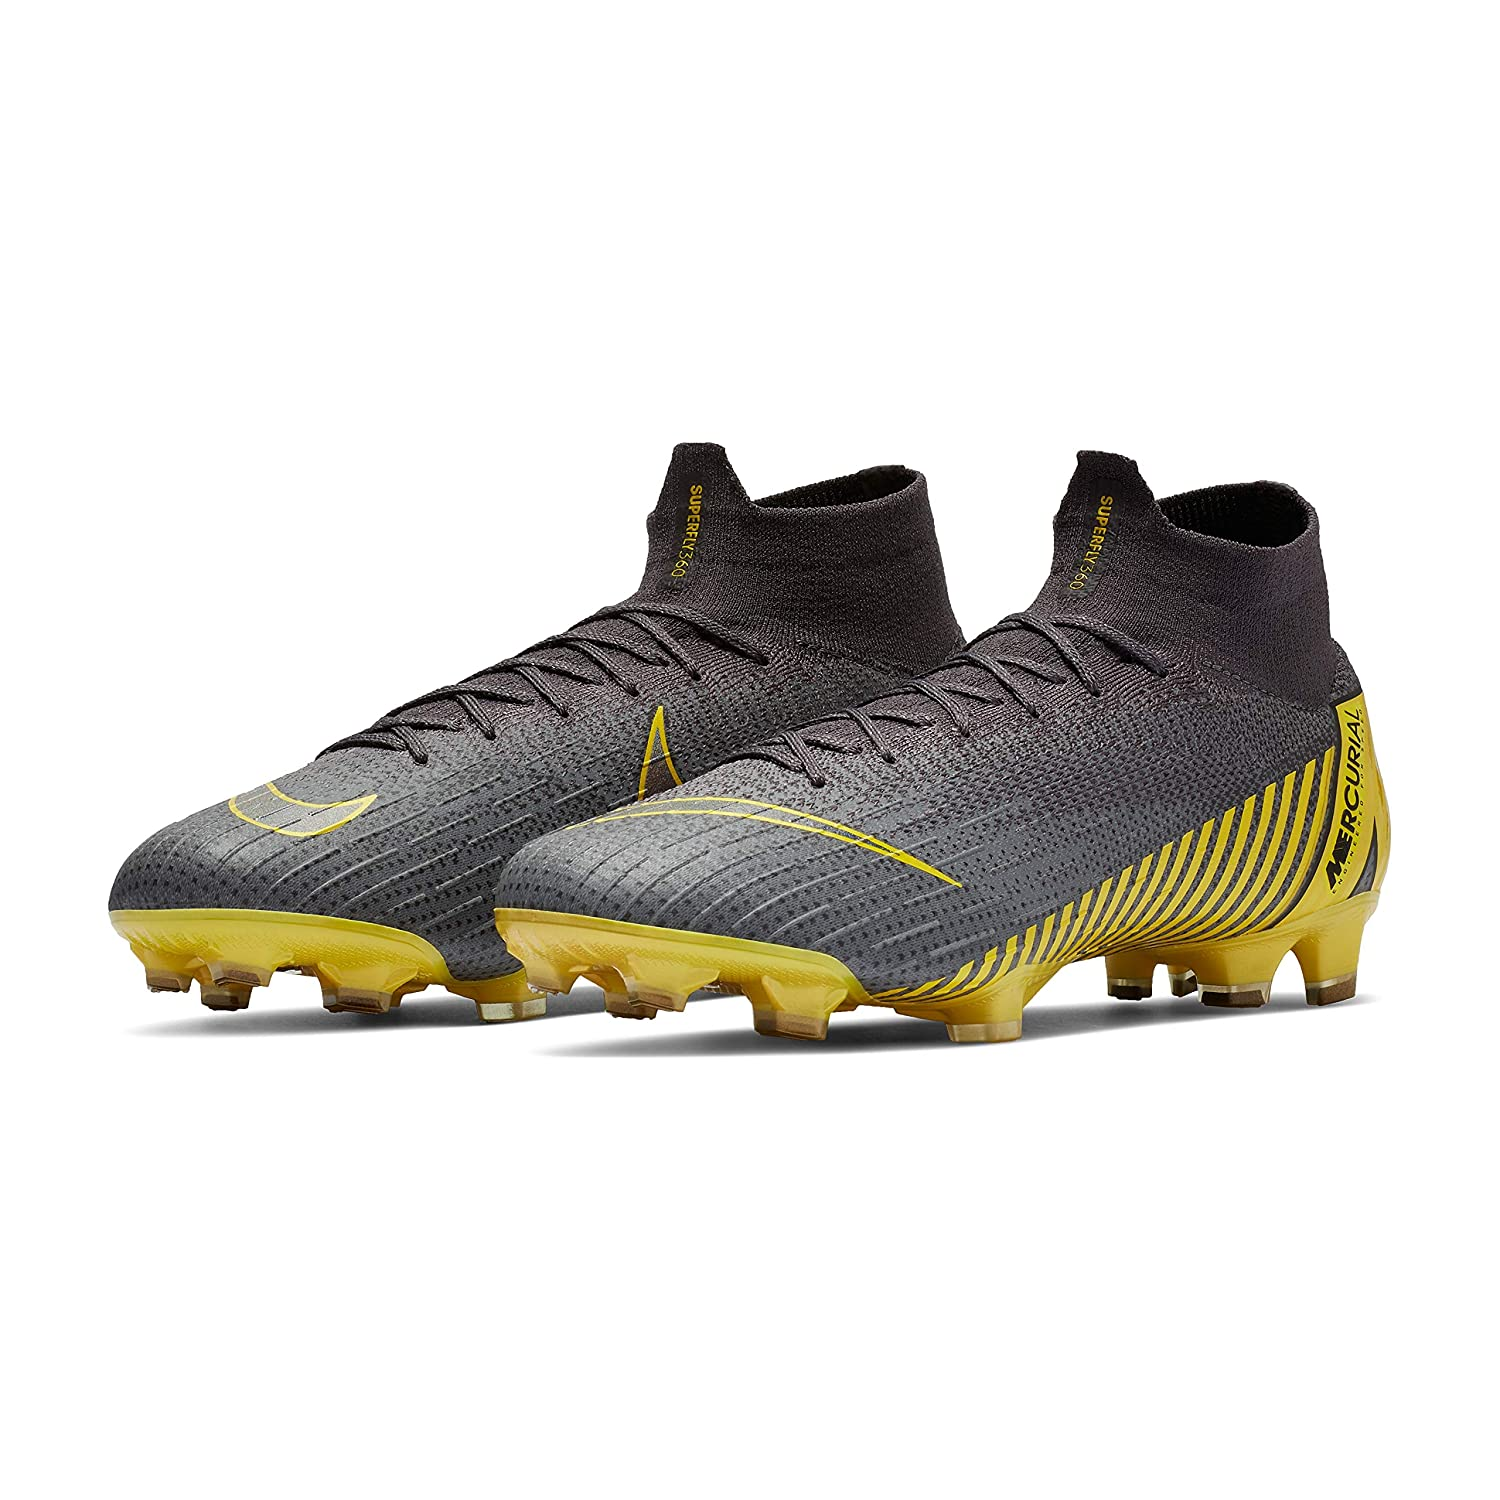 brand new 76fde b6aa9 Amazon.com   Nike Unisex Adults Mercurial Superfly 6 Elite FG Soccer Cleats    Soccer